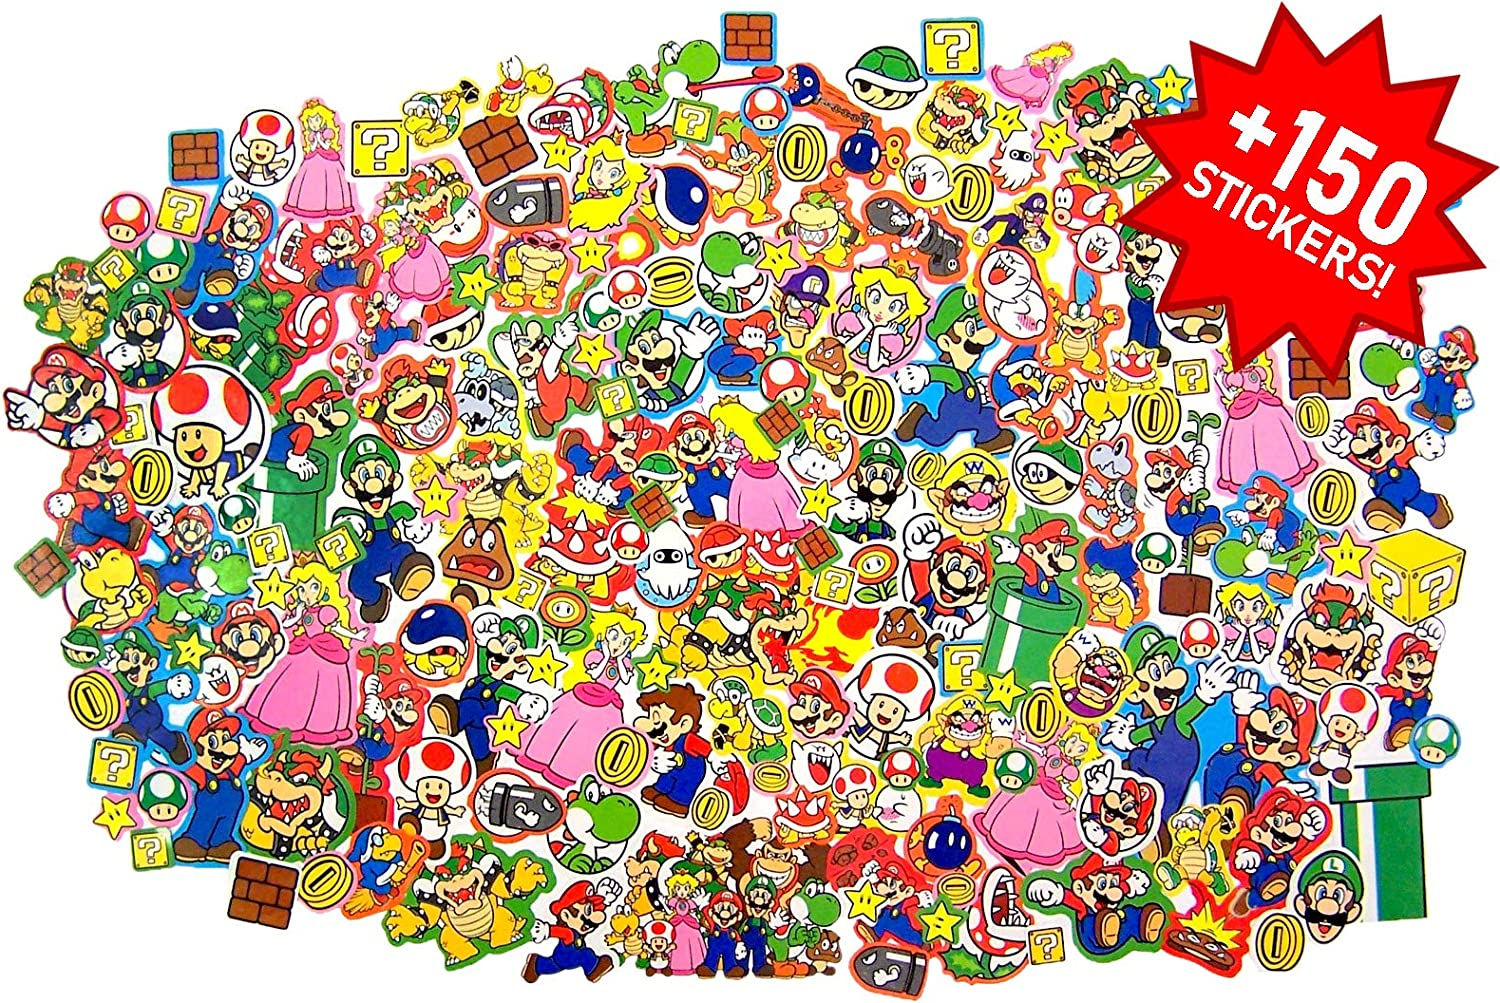 Assorted Super Mario Sticker Roll Gift Box for Journals, Planners, Laptops, Scrapbook, 150 Count